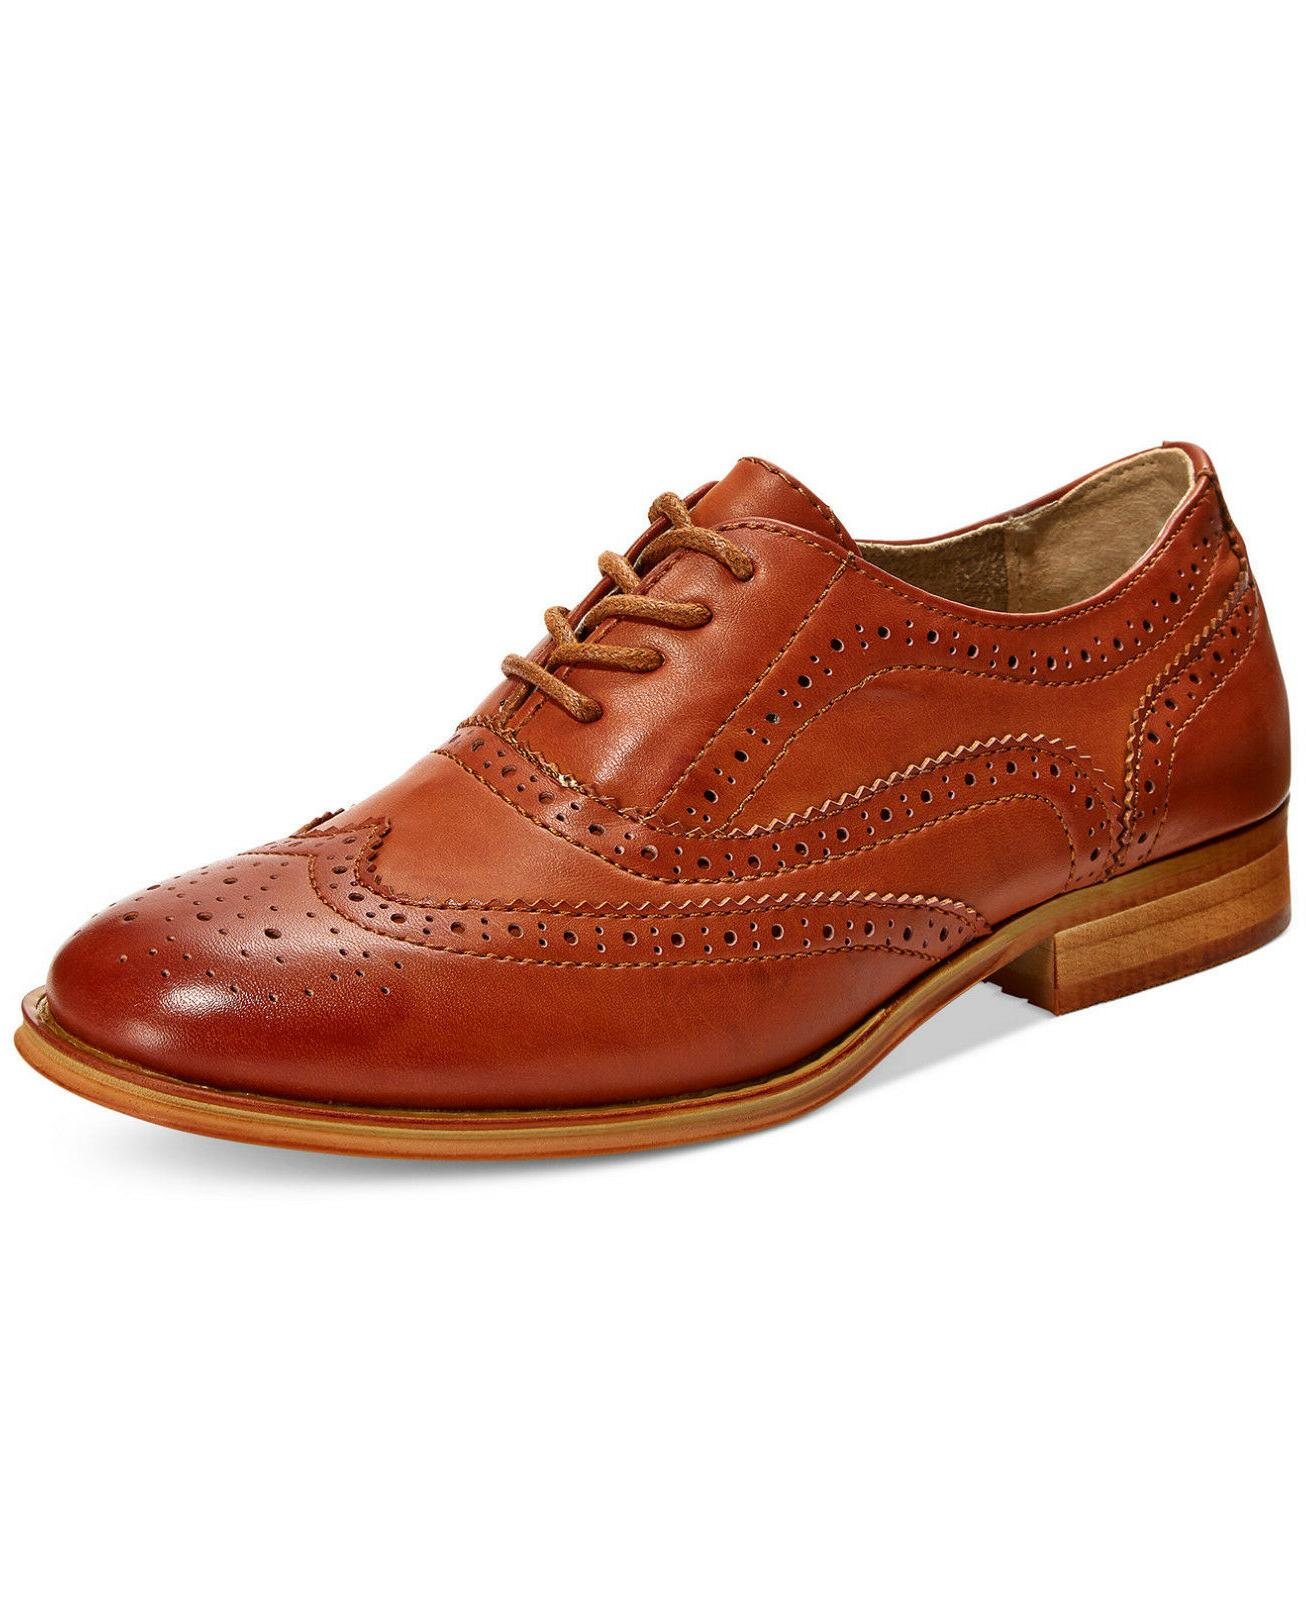 NEW Wanted Lace Up Oxfords Oxford Vegan Shoes